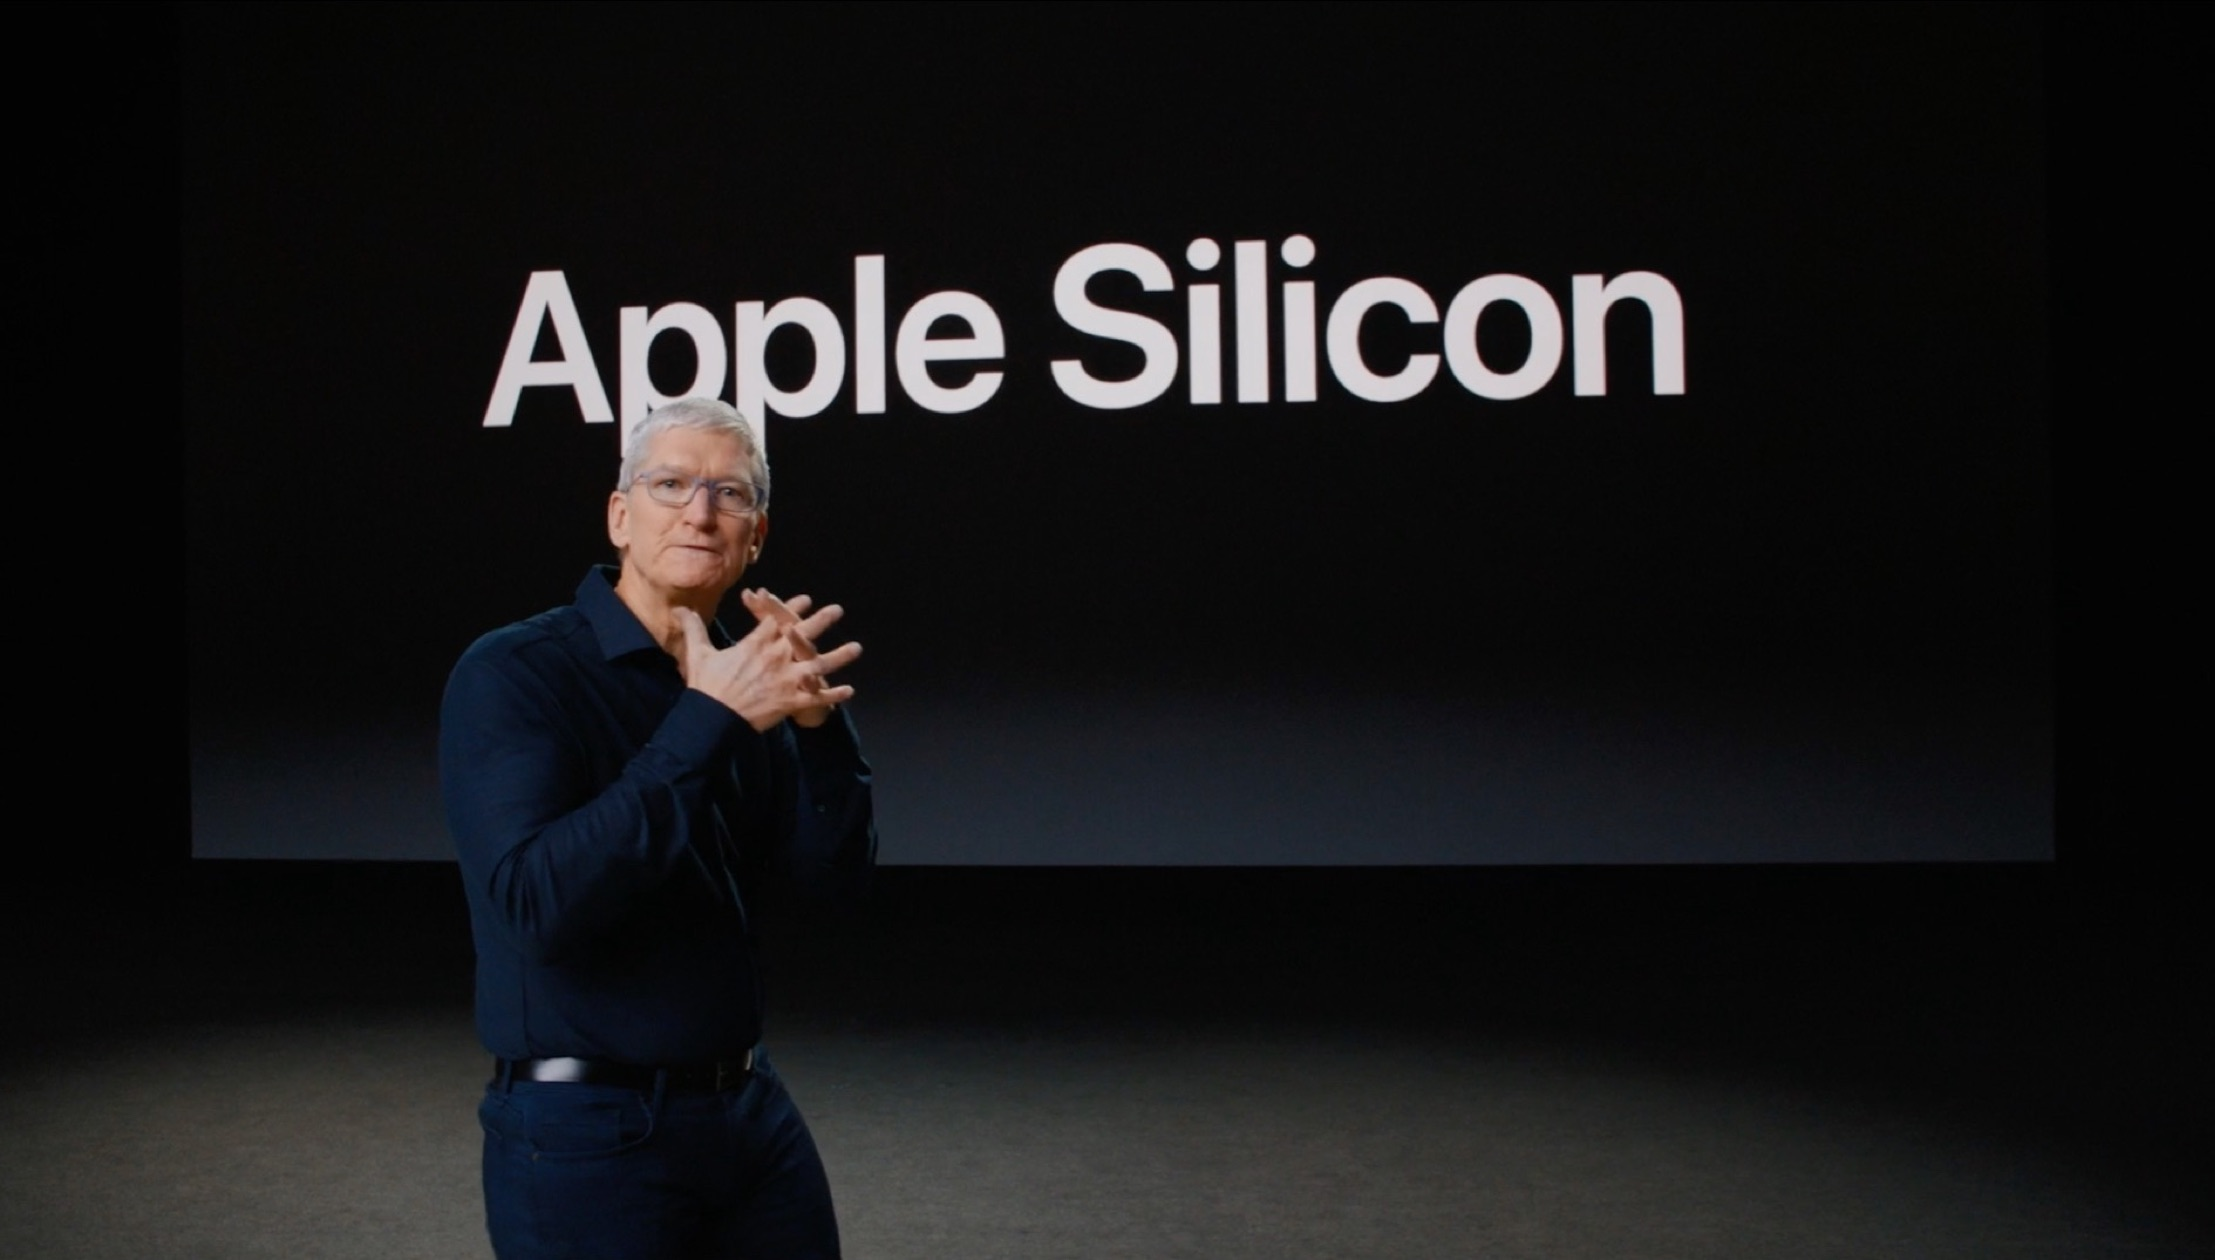 Apple Silicon and Tim Cook.